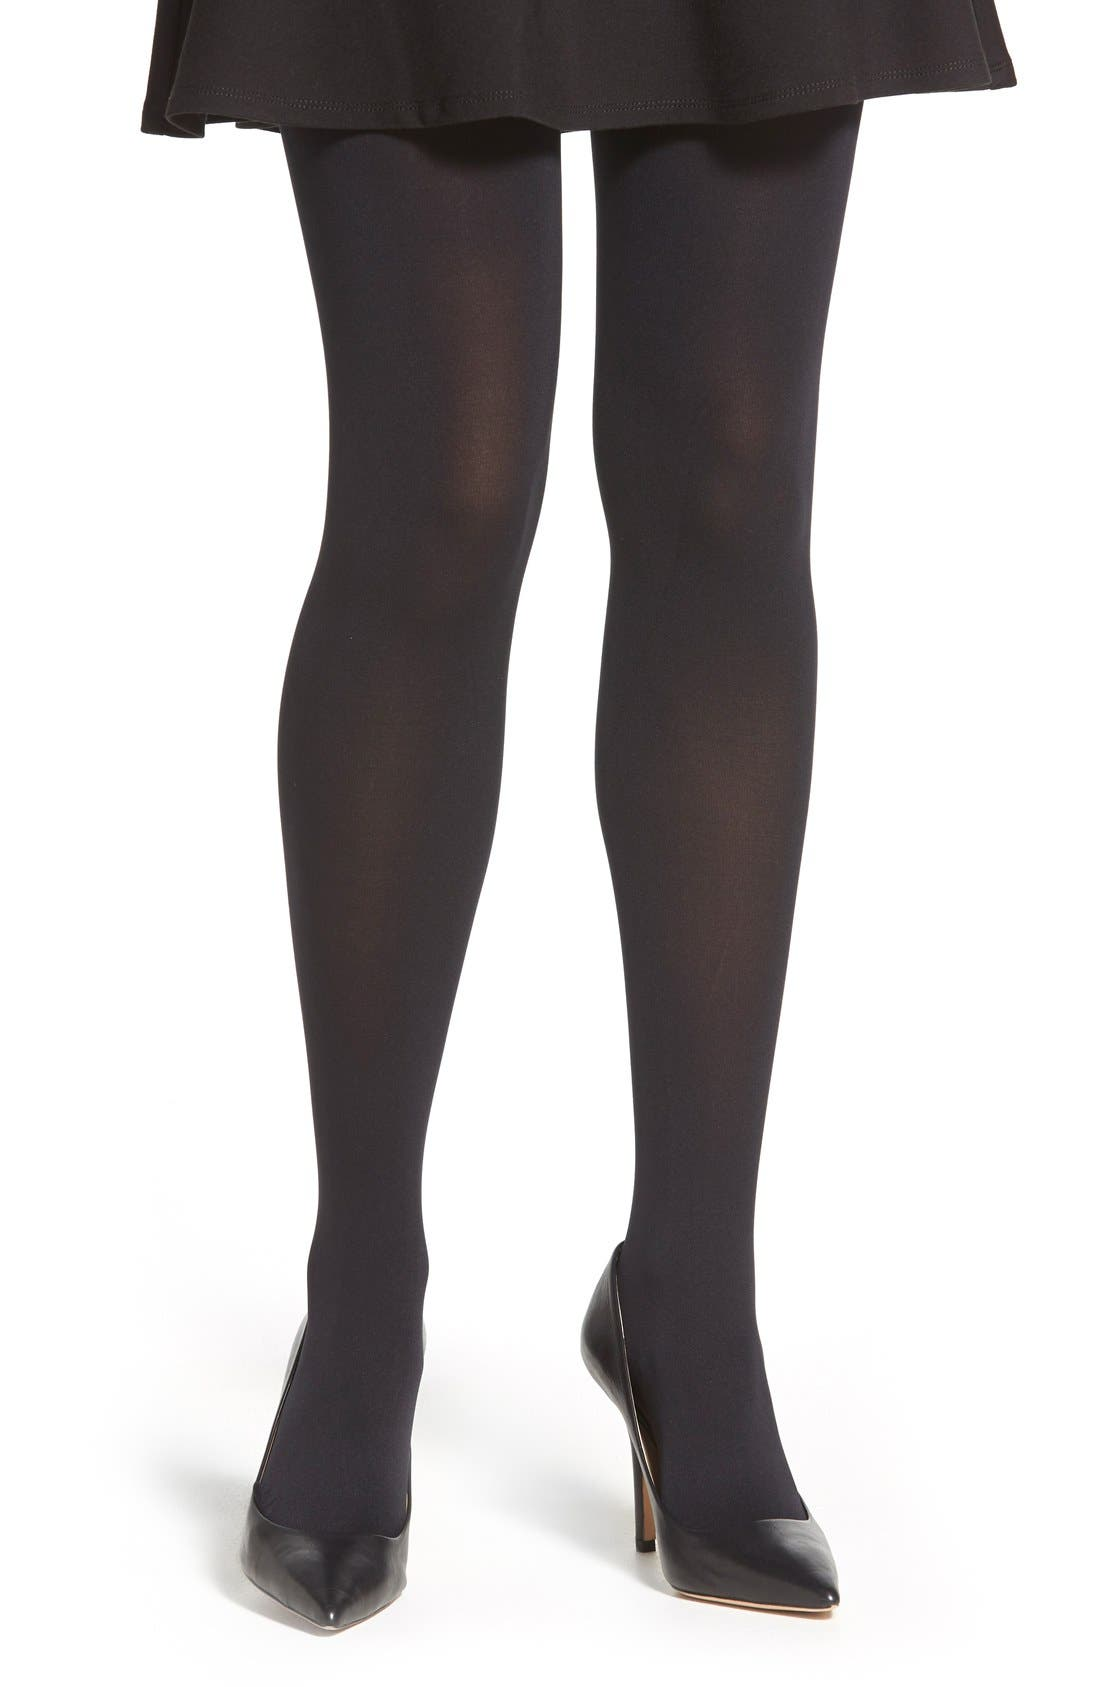 PRETTY POLLY,                             'Legs on the Go' Tights,                             Main thumbnail 1, color,                             007